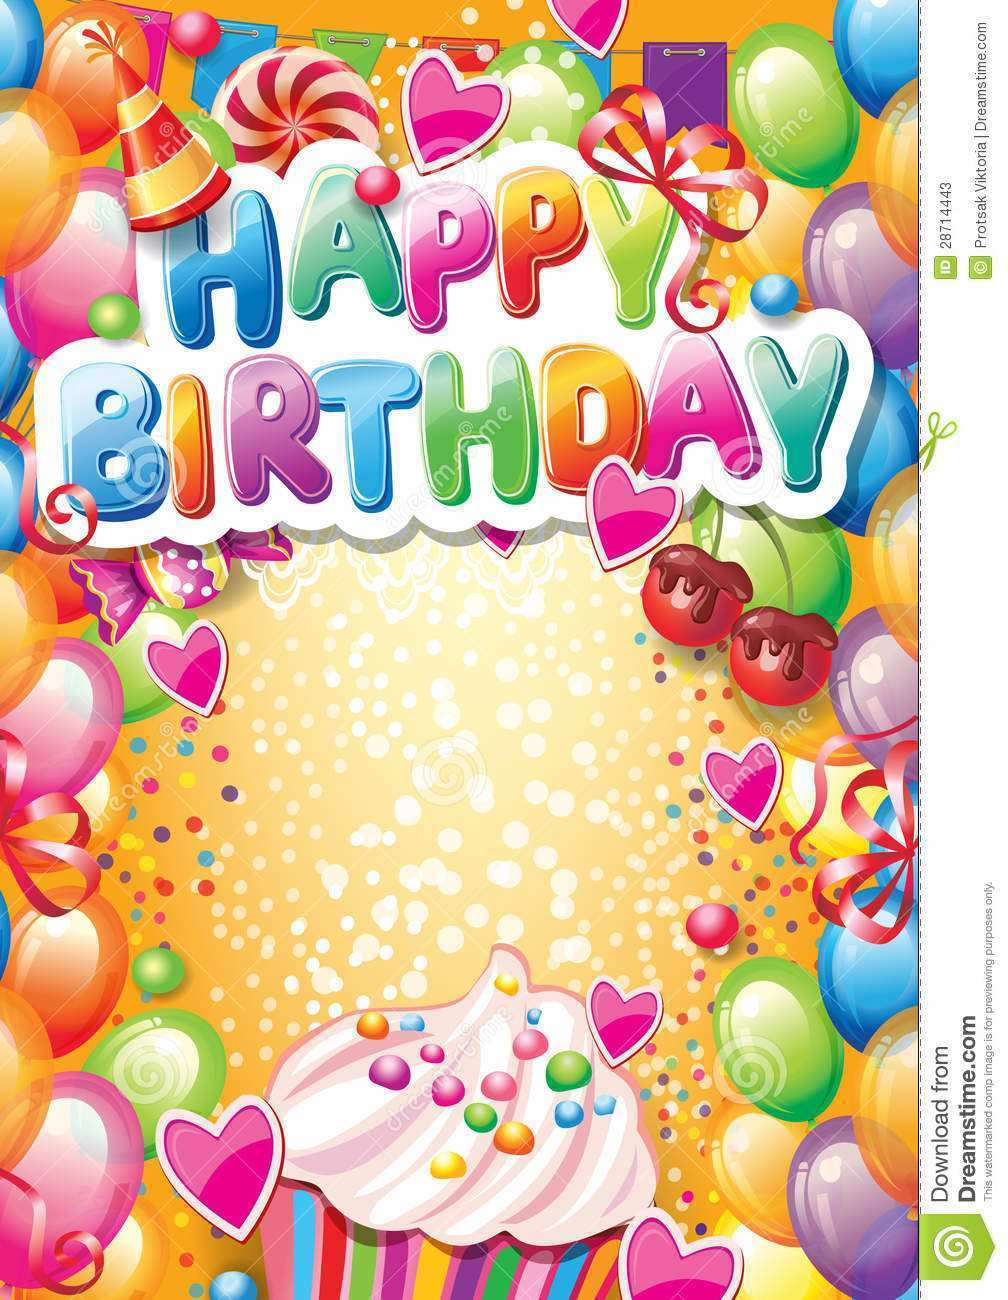 Birthday Cards Images Free Download : birthday, cards, images, download, Online, Happy, Birthday, Template, Download, Cards, Design, Templates